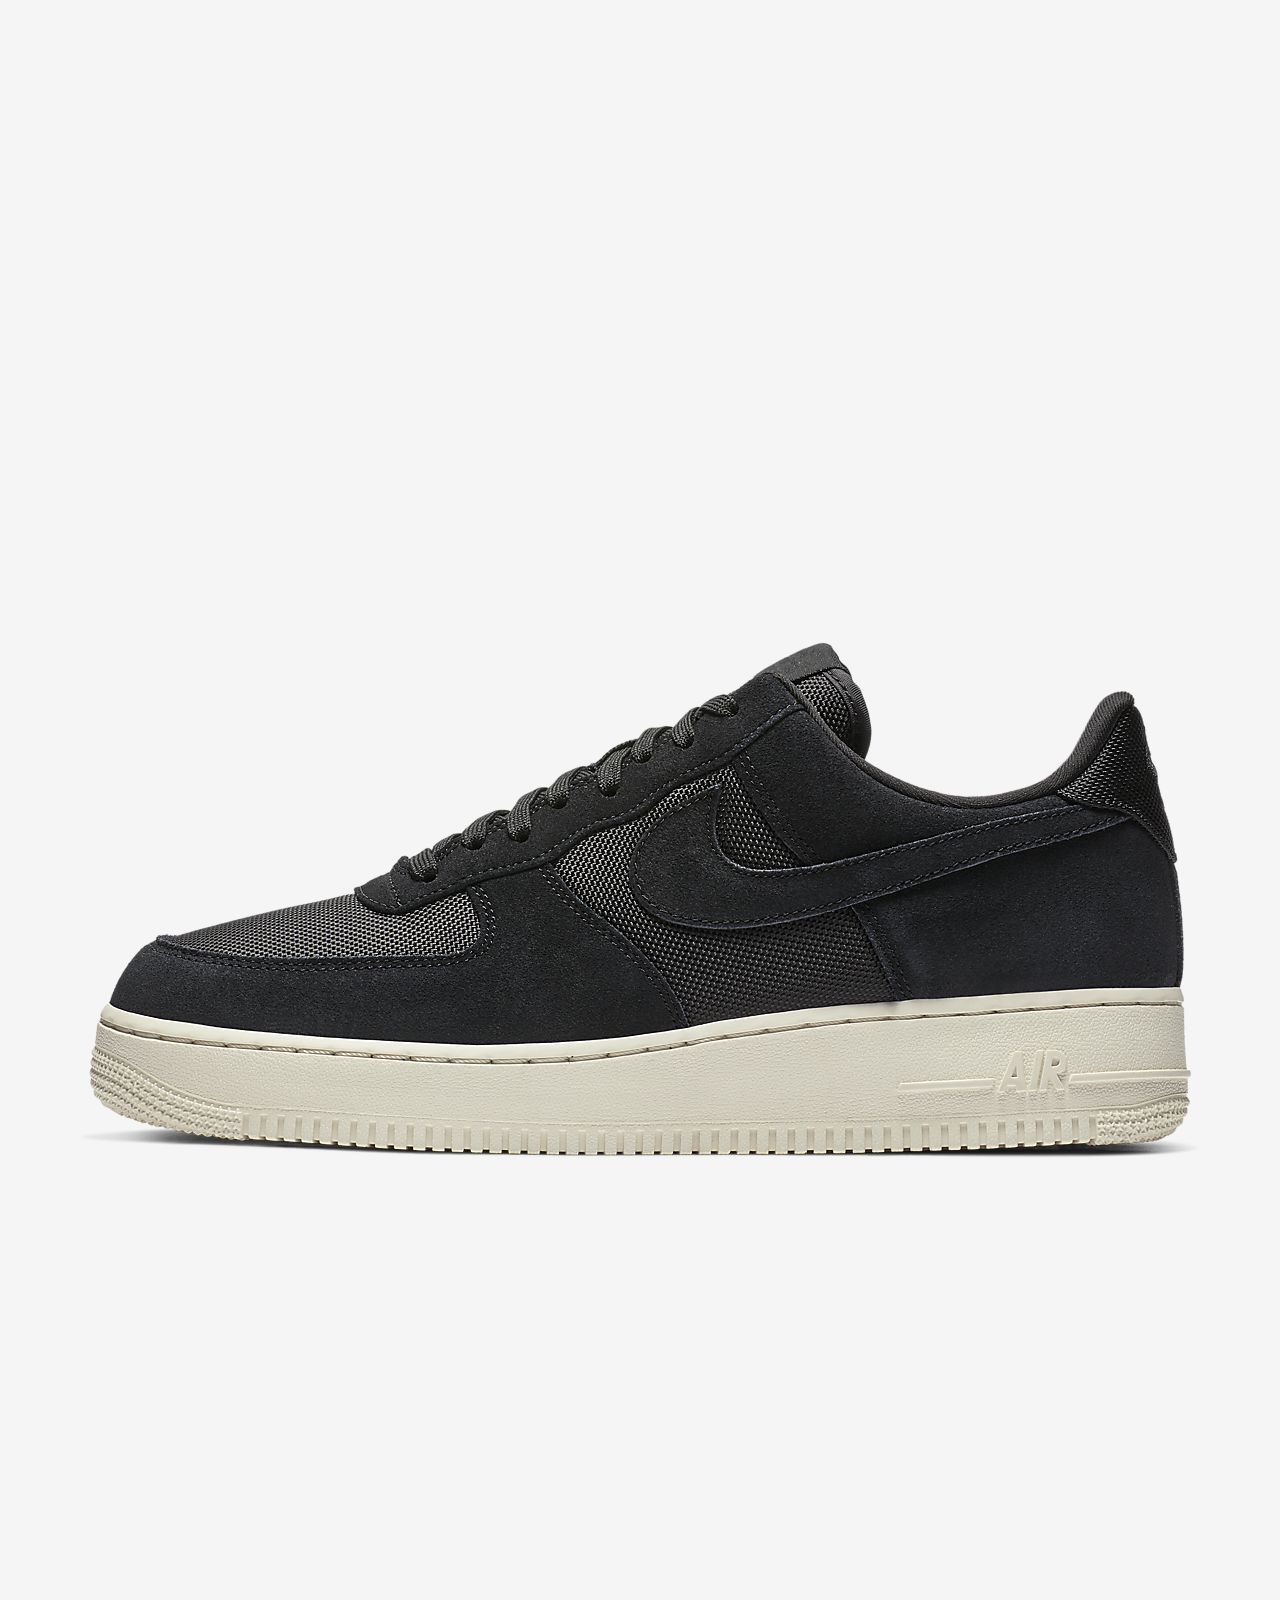 reputable site 1635f ecd36 Chaussure Nike Air Force 1 '07 1 pour Homme. Nike.com CA